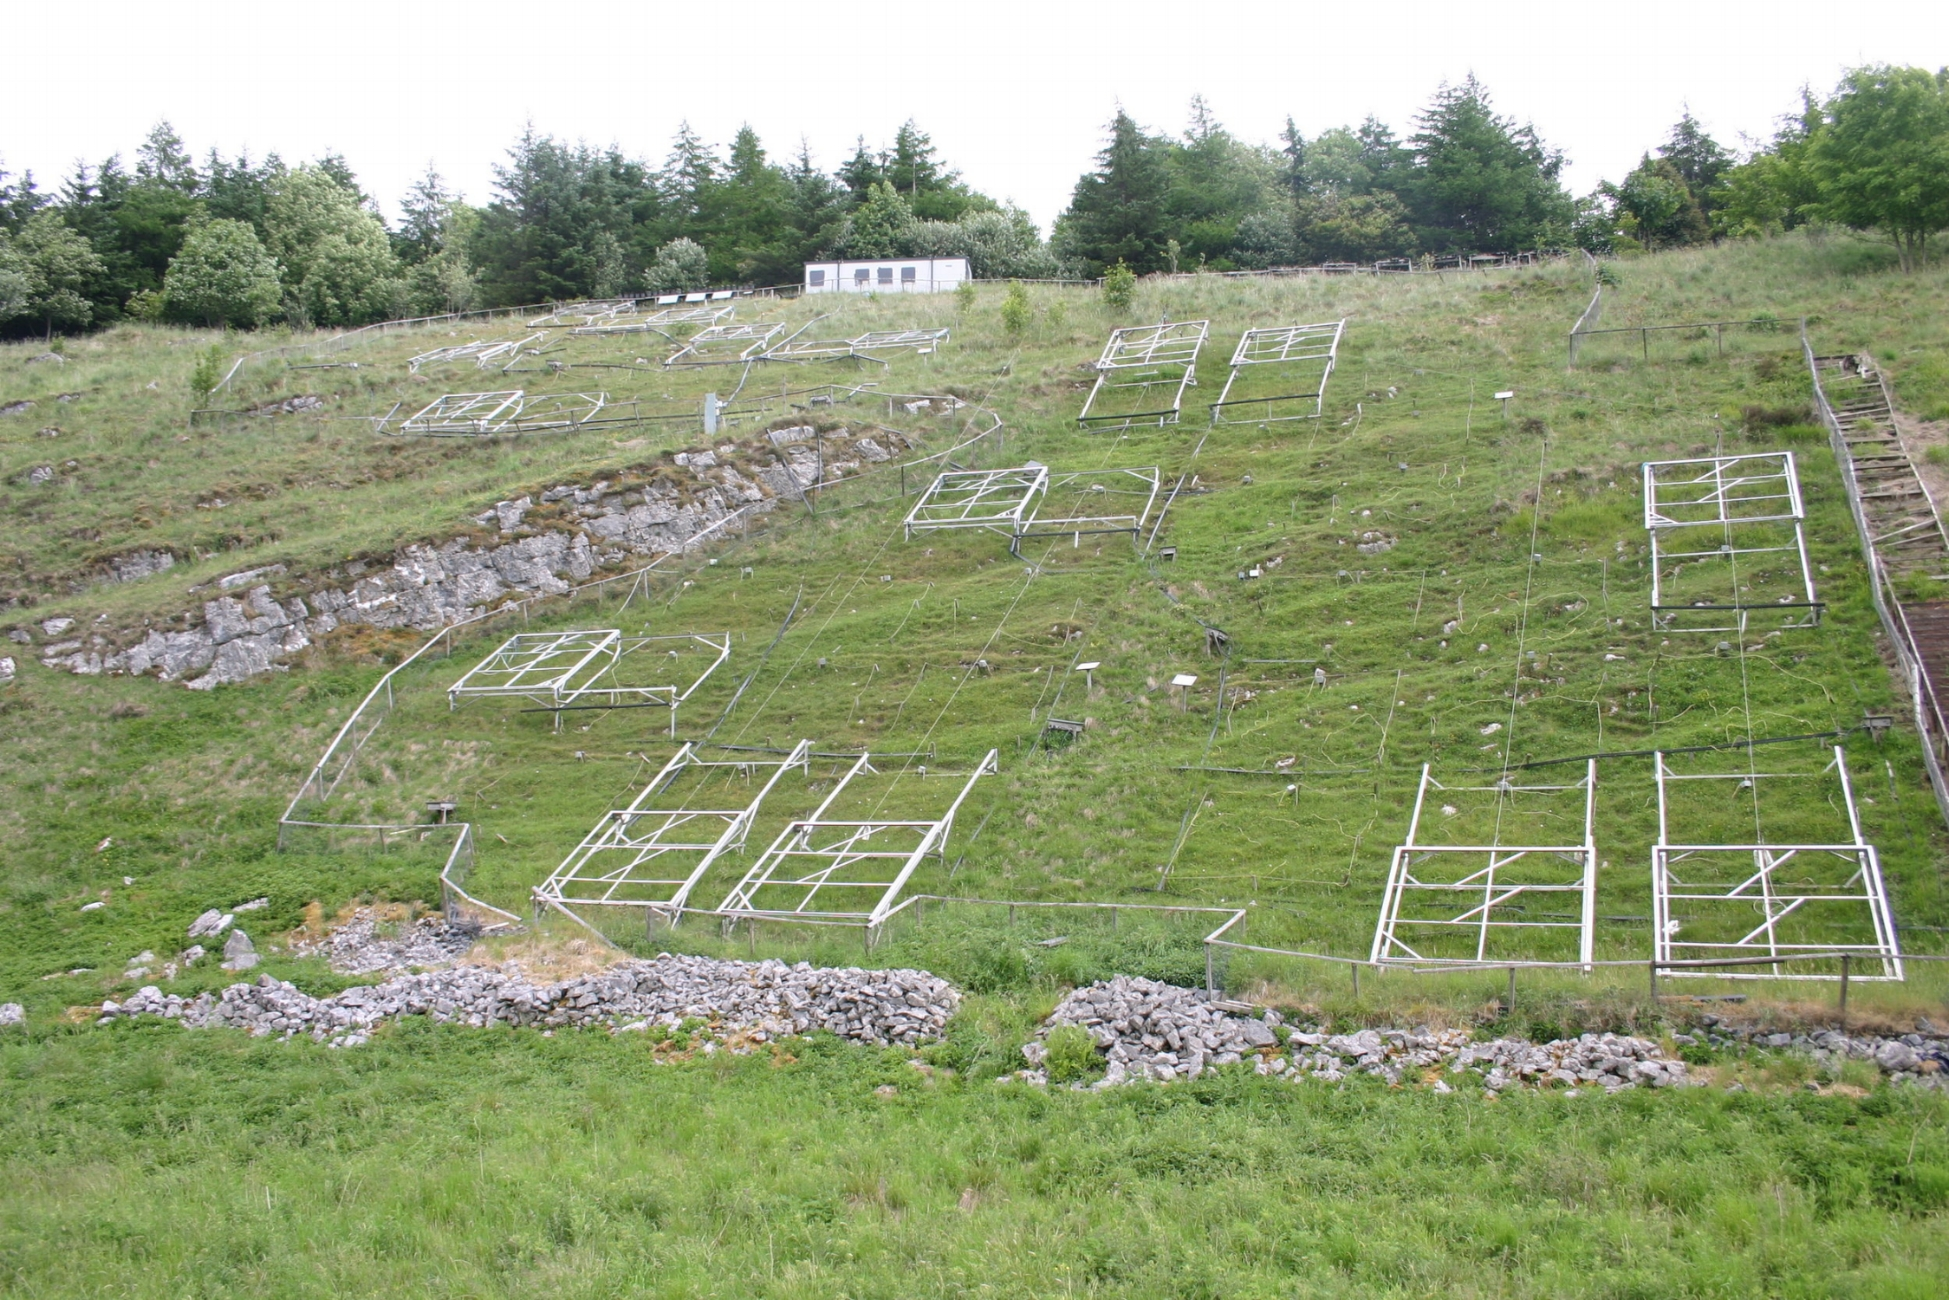 panorama of all plots, without rain covers